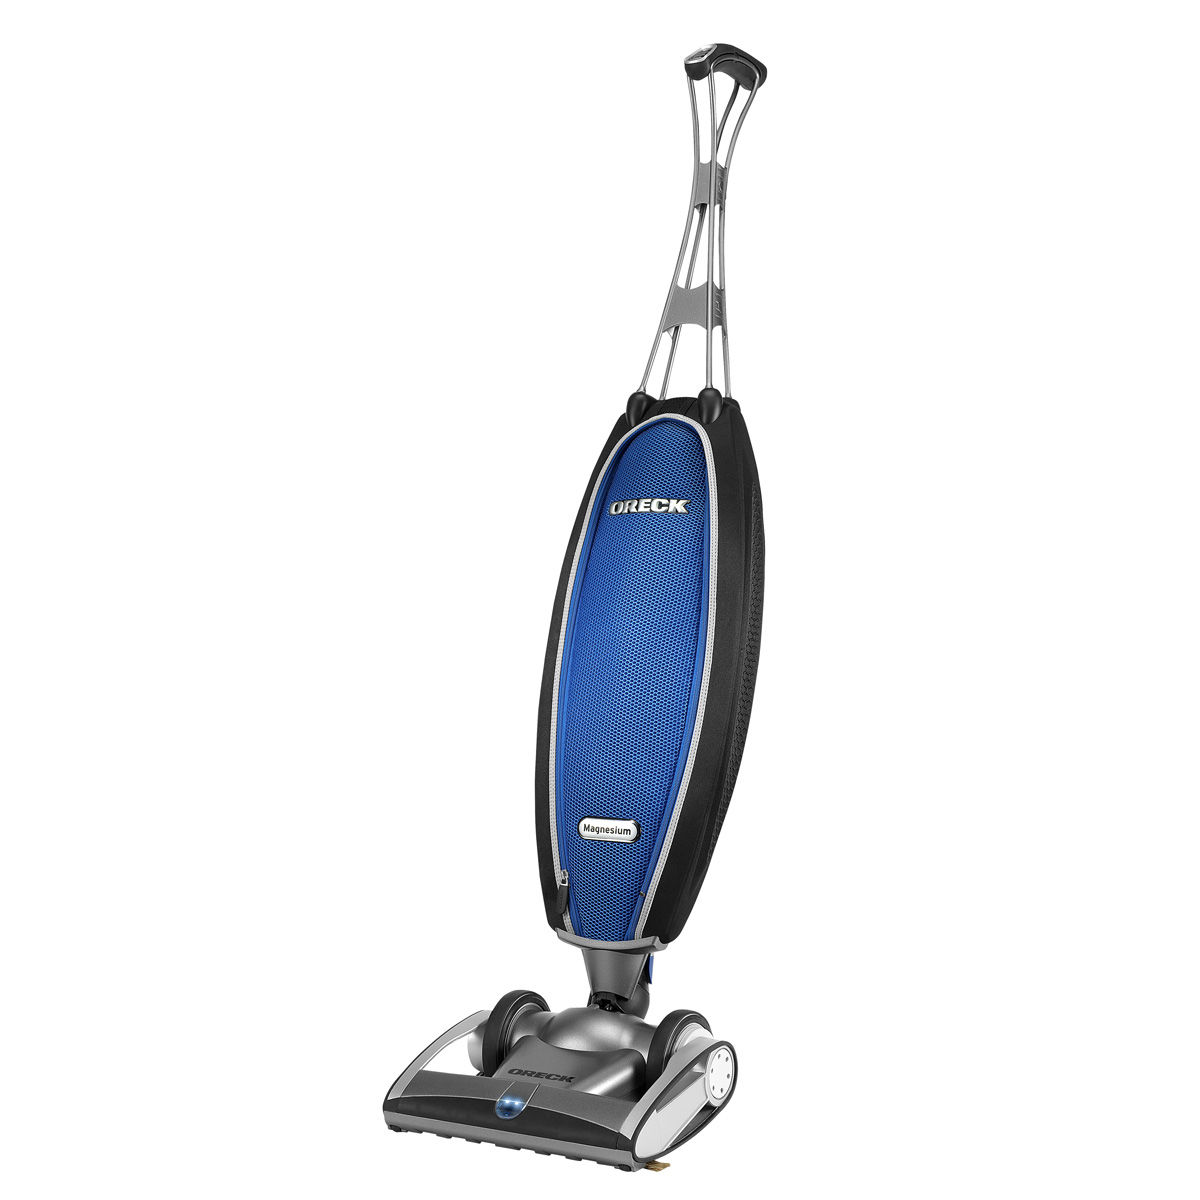 hight resolution of oreck lw1500rs oreck lw1500rs oreck lw1500rs oreck lw1500rs oreck lw1500rs vacuum cleaner download instruction manual